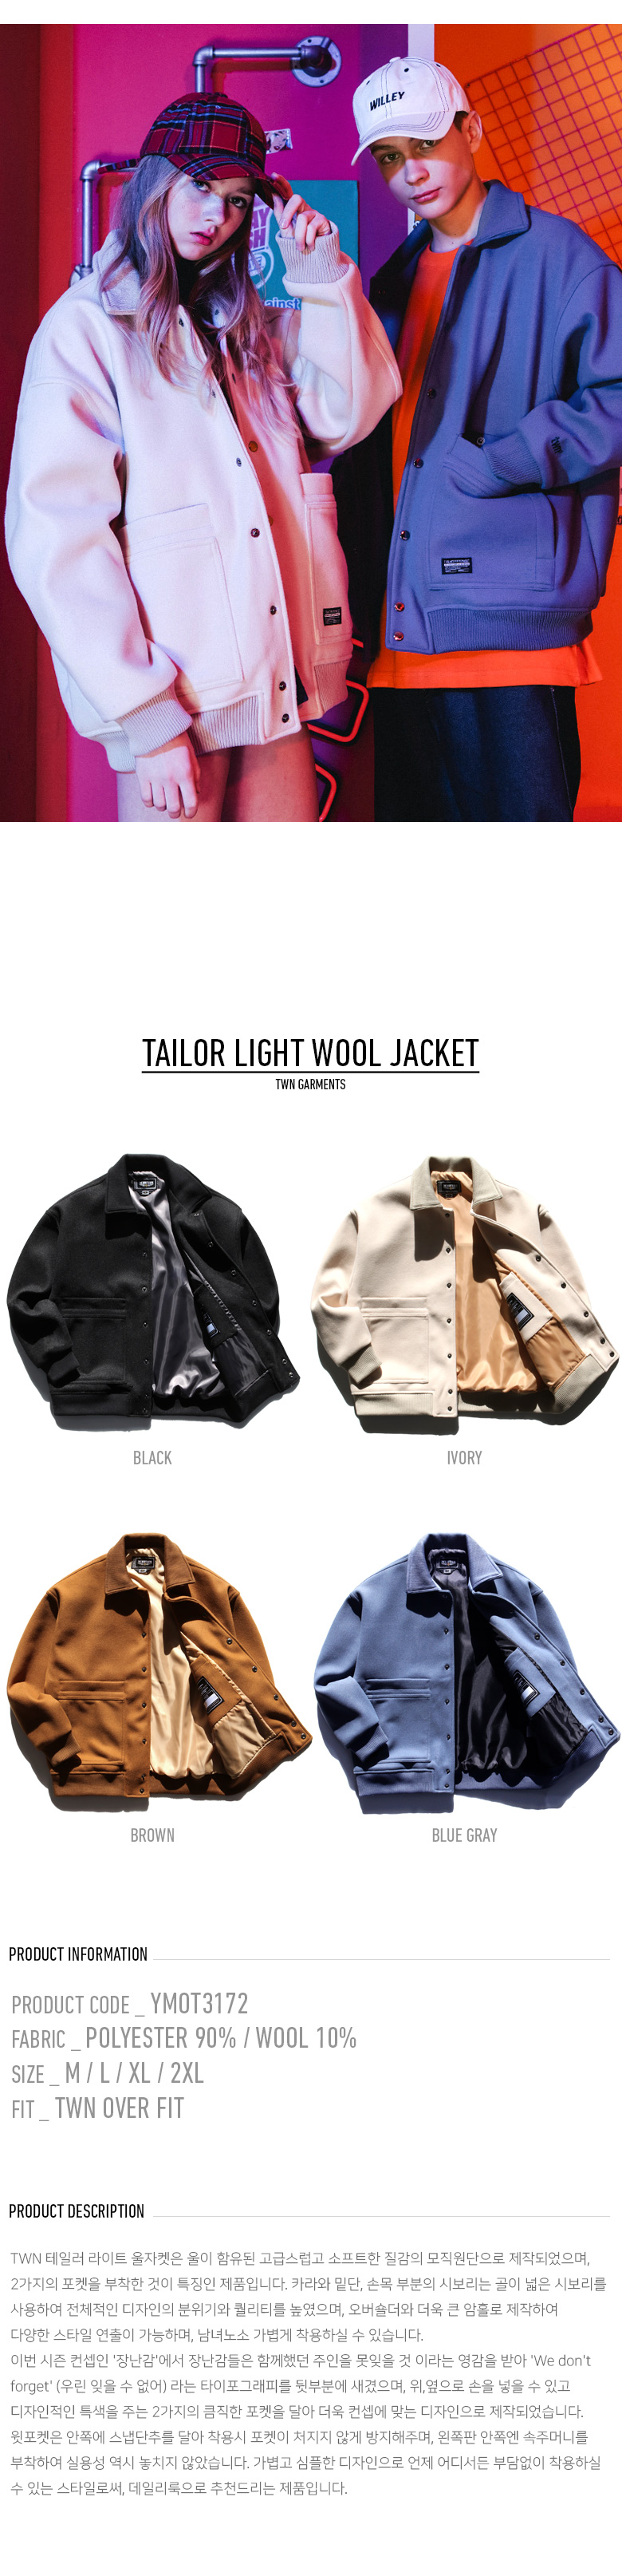 20190121_twn_tailor_intro_ym.jpg